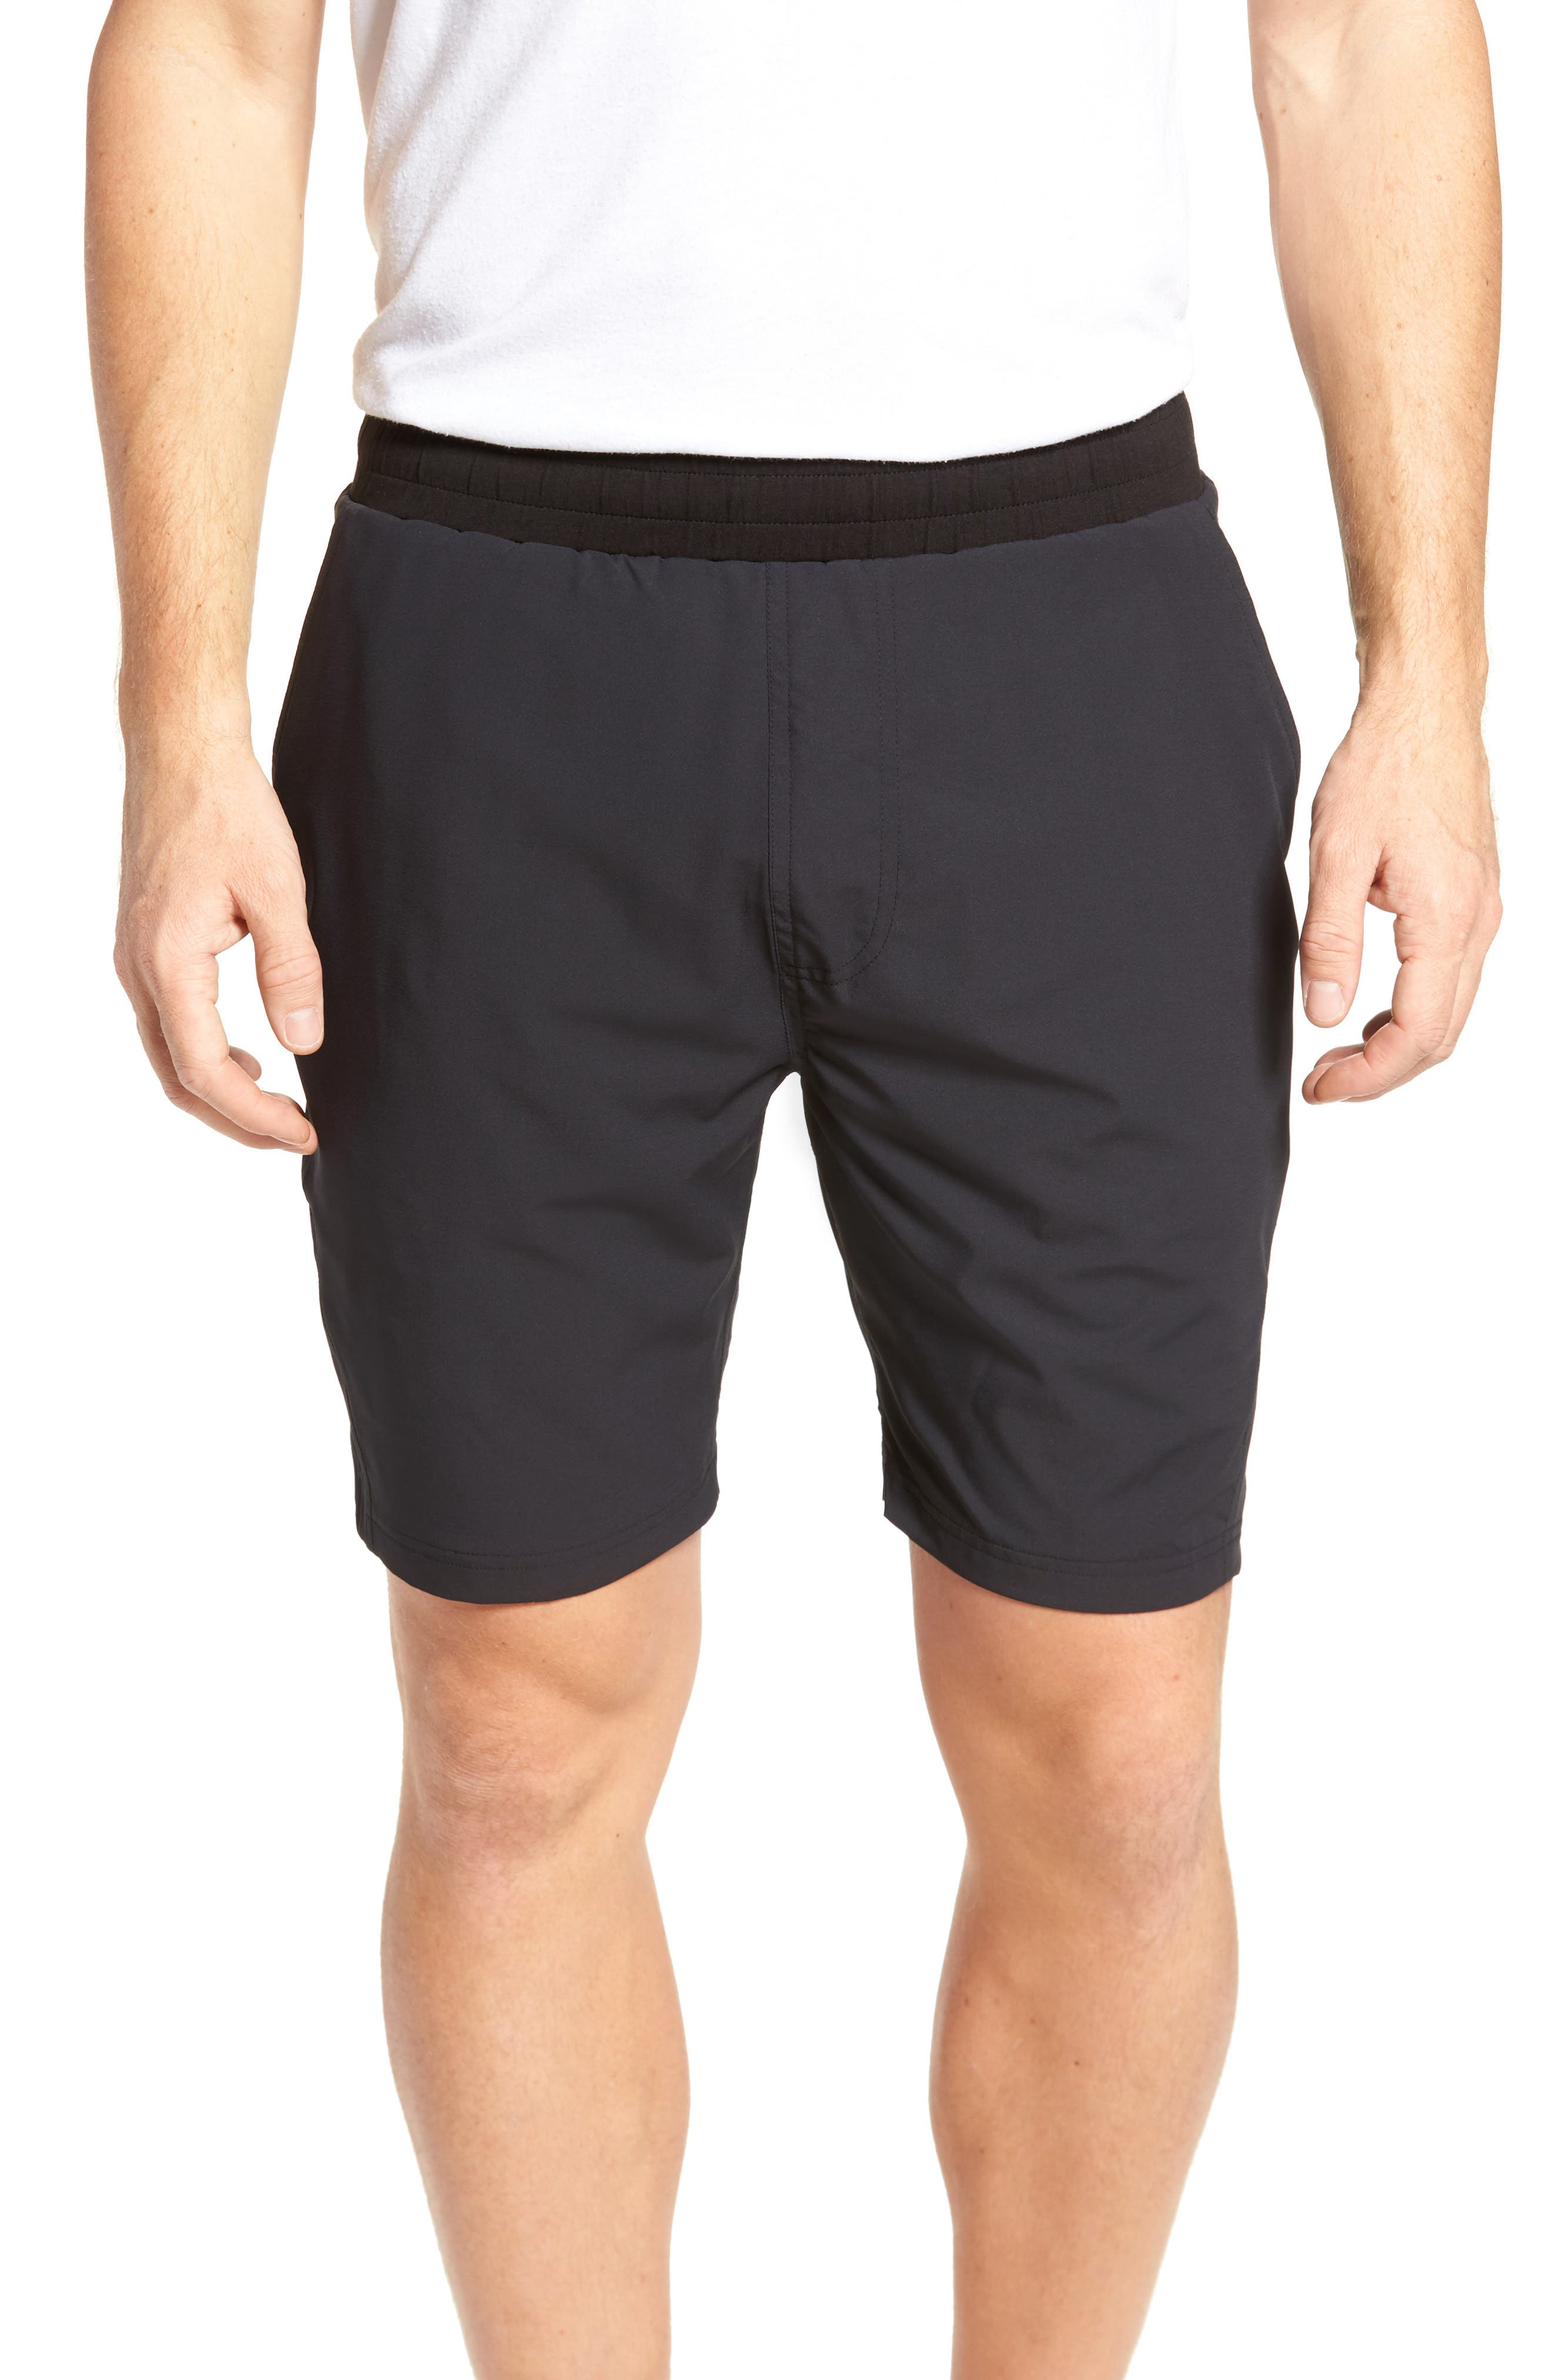 TASC PERFORMANCE, Charge Water Resistant Athletic Shorts, Main thumbnail 1, color, BLACK